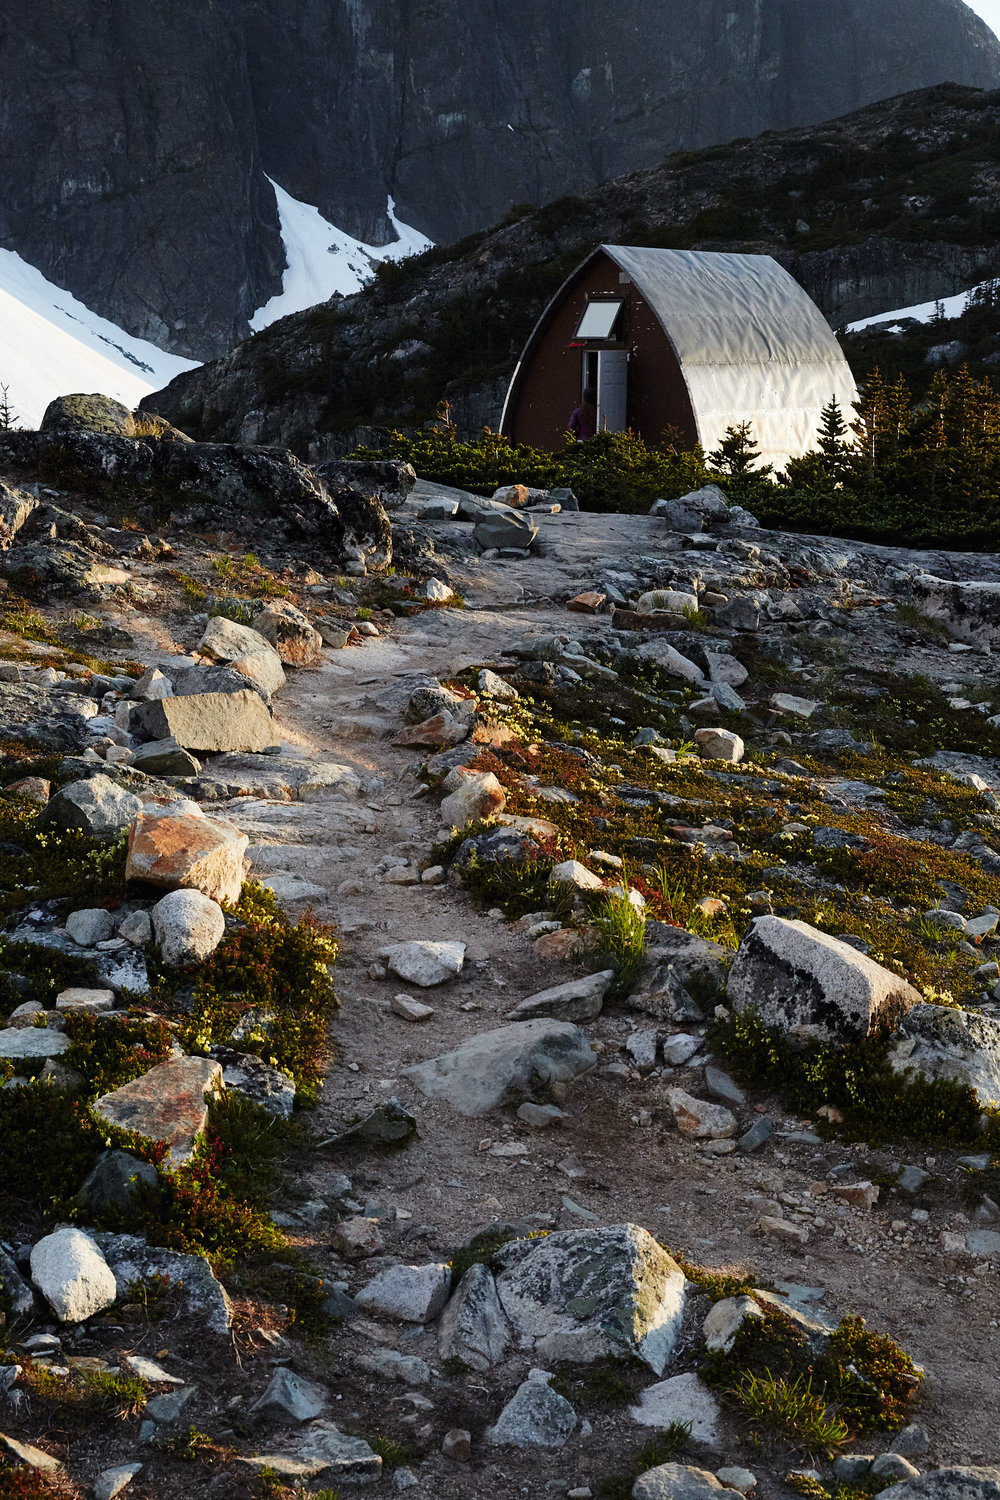 The lake is home to a small alpine hut that can be used to store your things away from animals, cook and sleep.